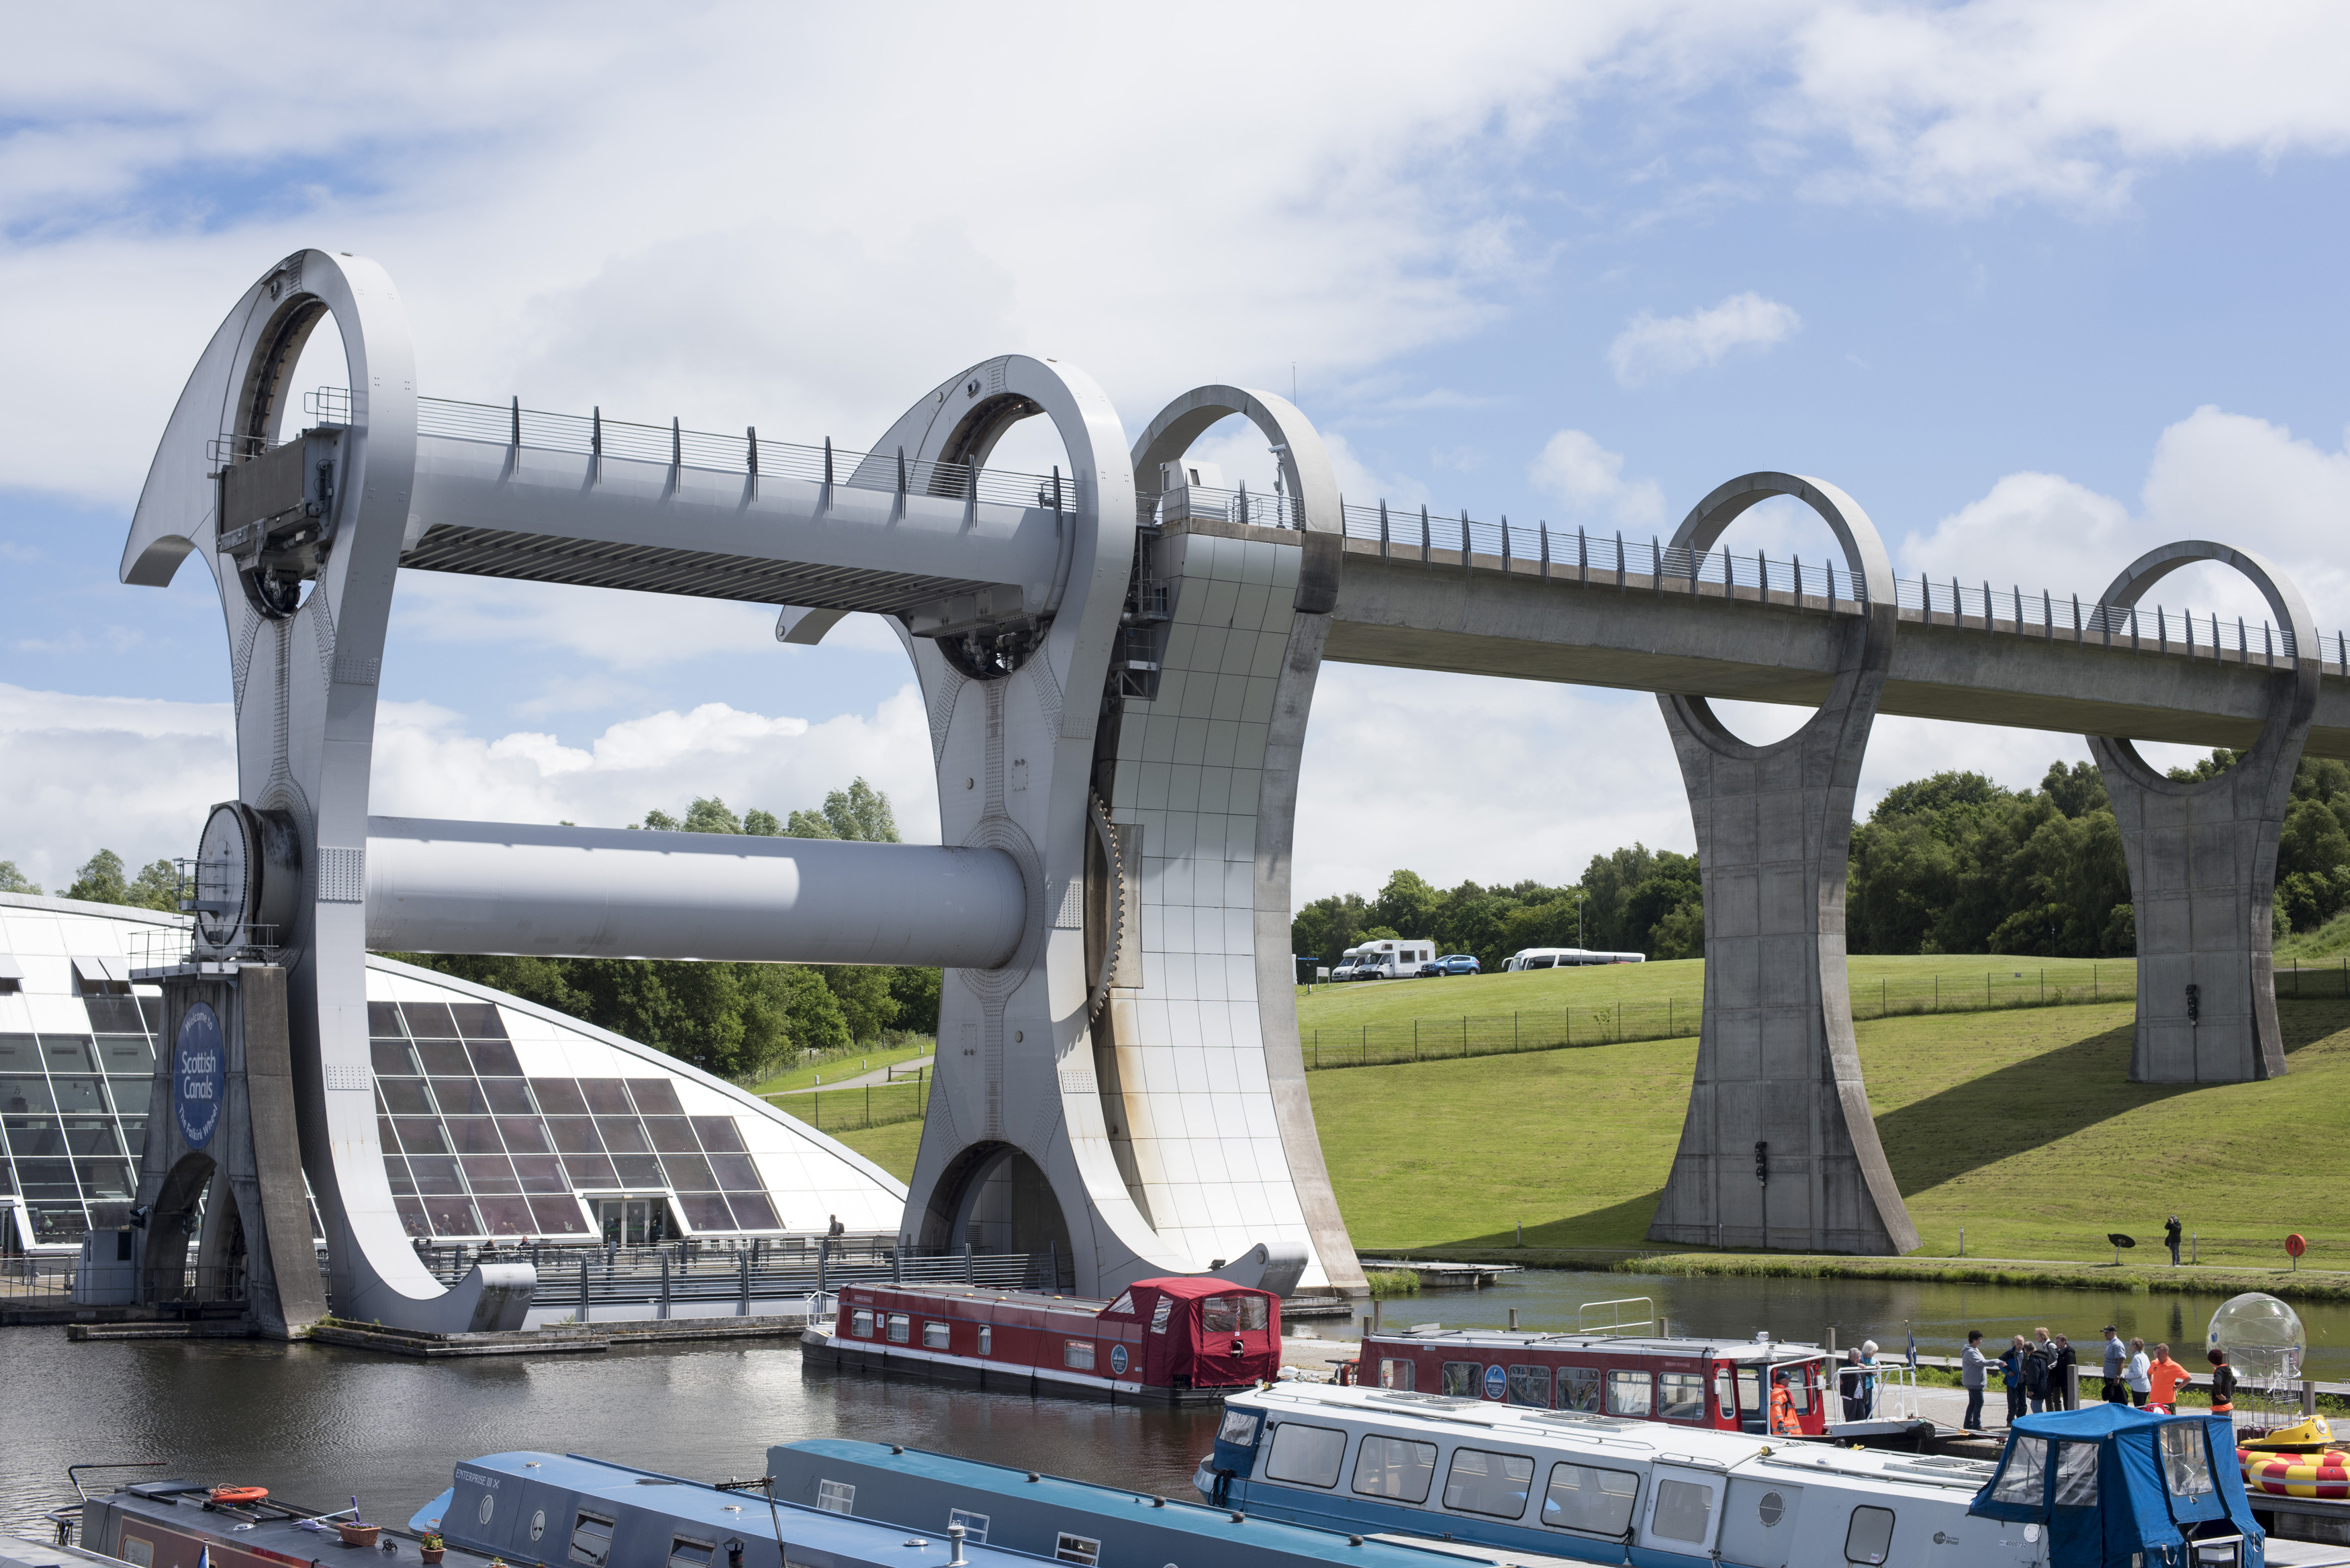 A view of the Falkirk Wheel Canal boat lift, Scotland